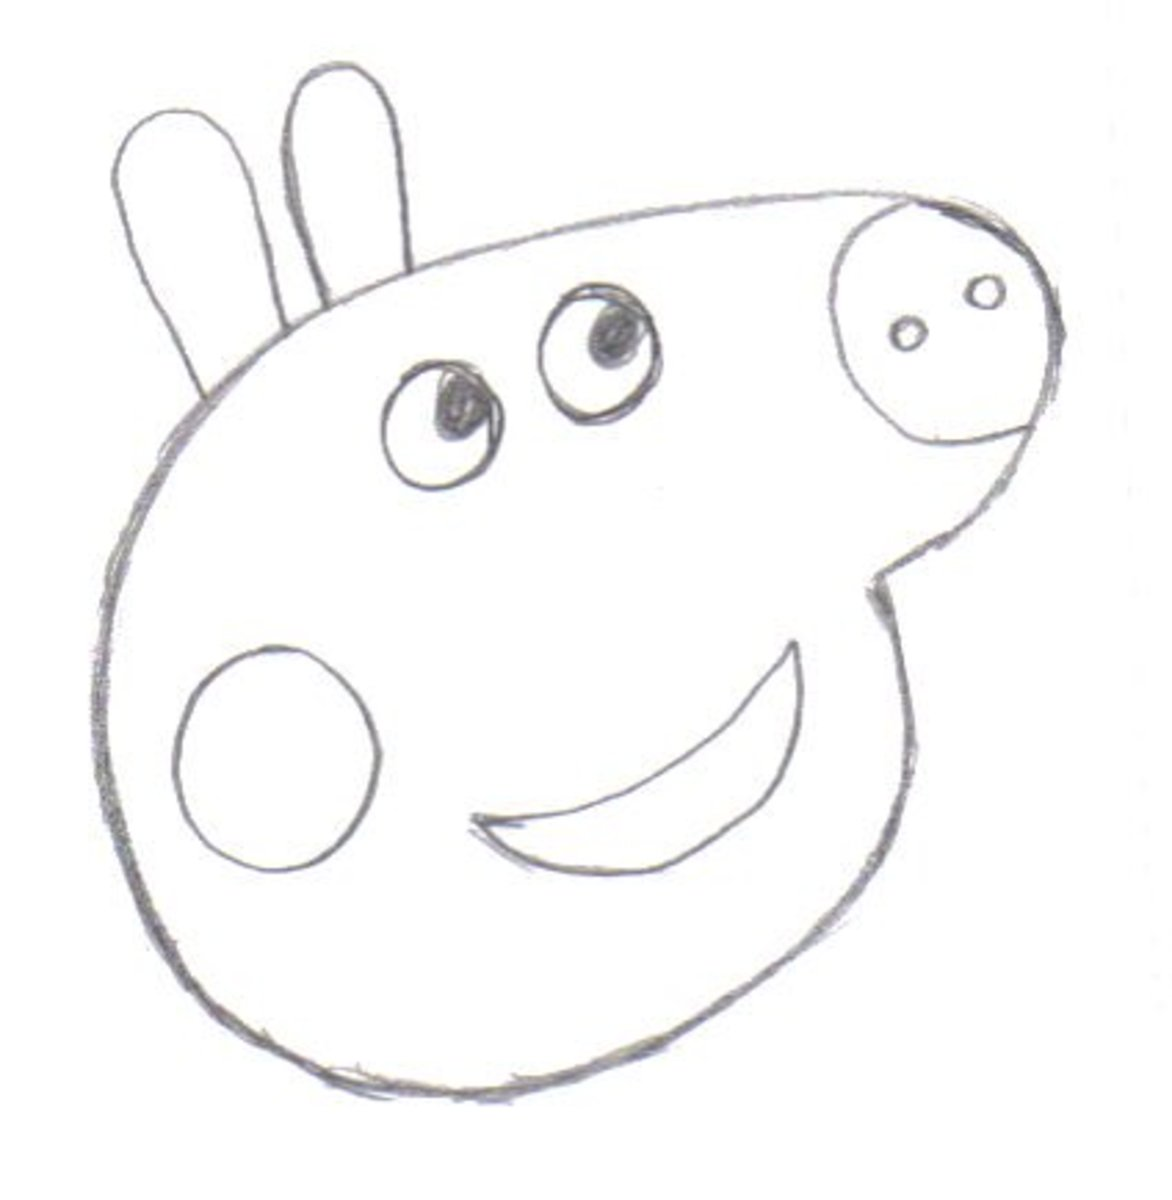 Draw in Peppas nose and mouth.